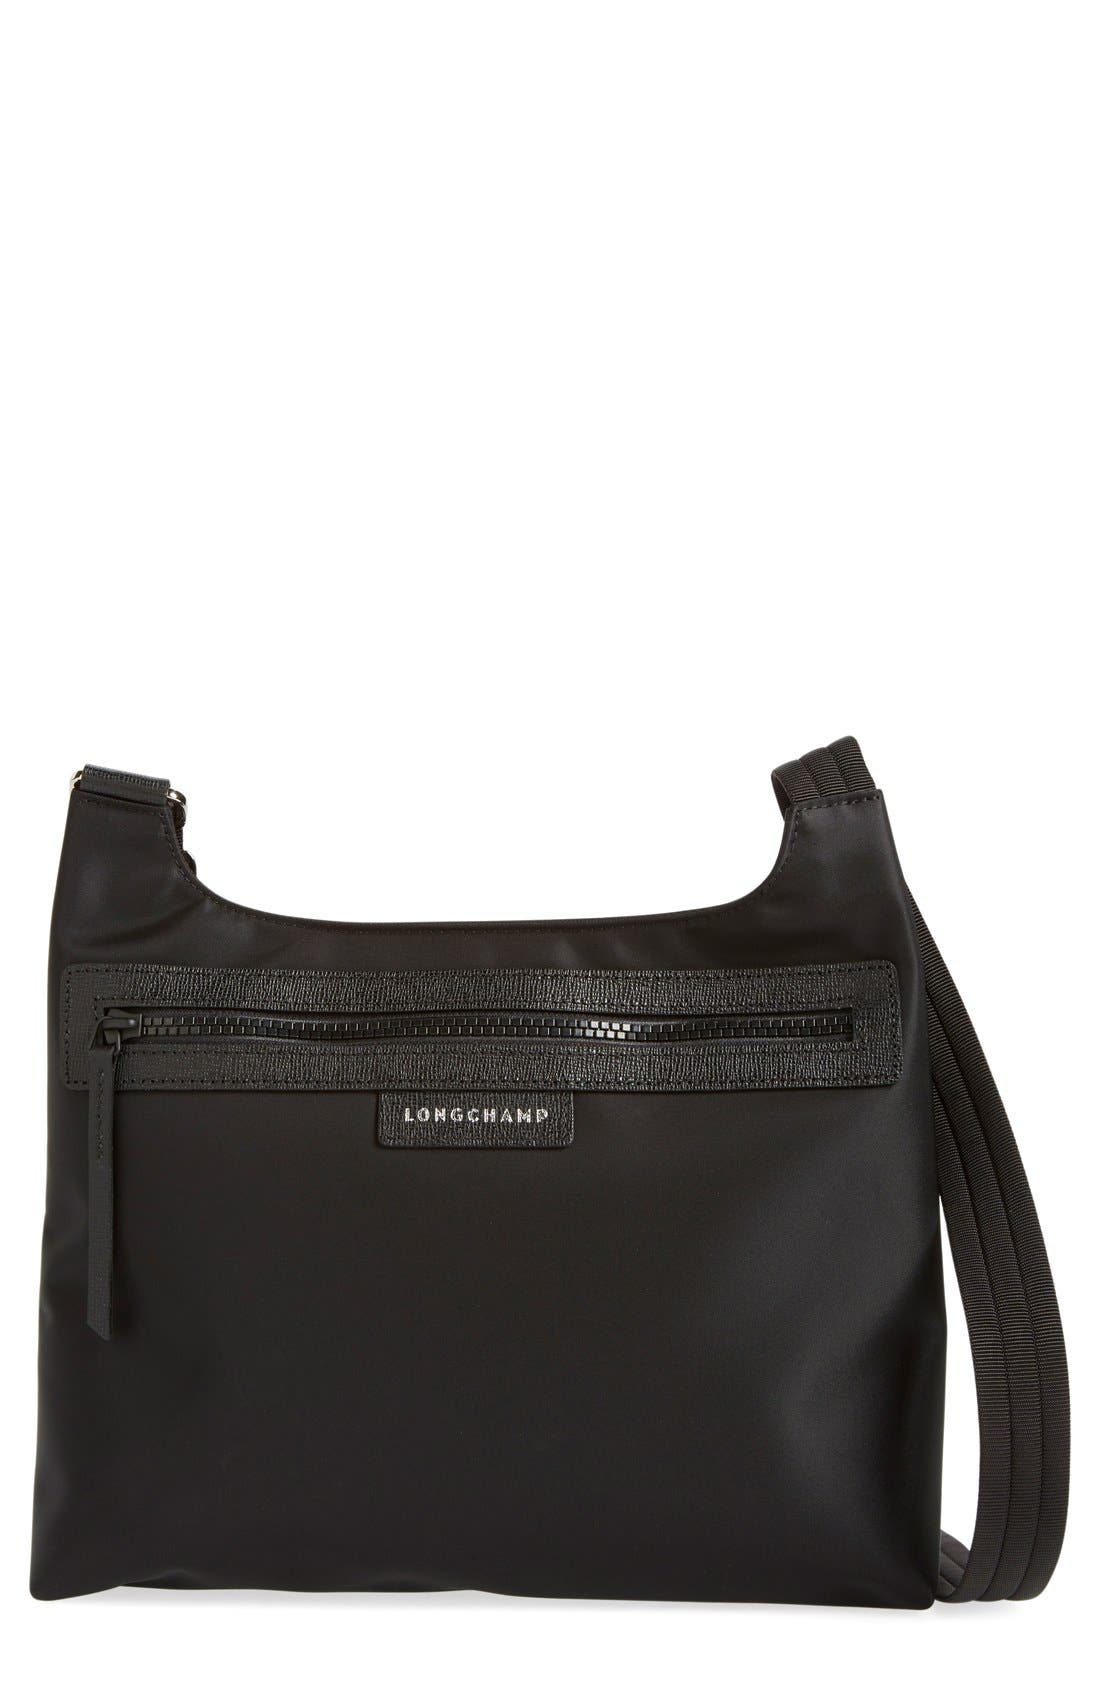 LONGCHAMP 'Le Pliage Neo' Nylon Crossbody Bag